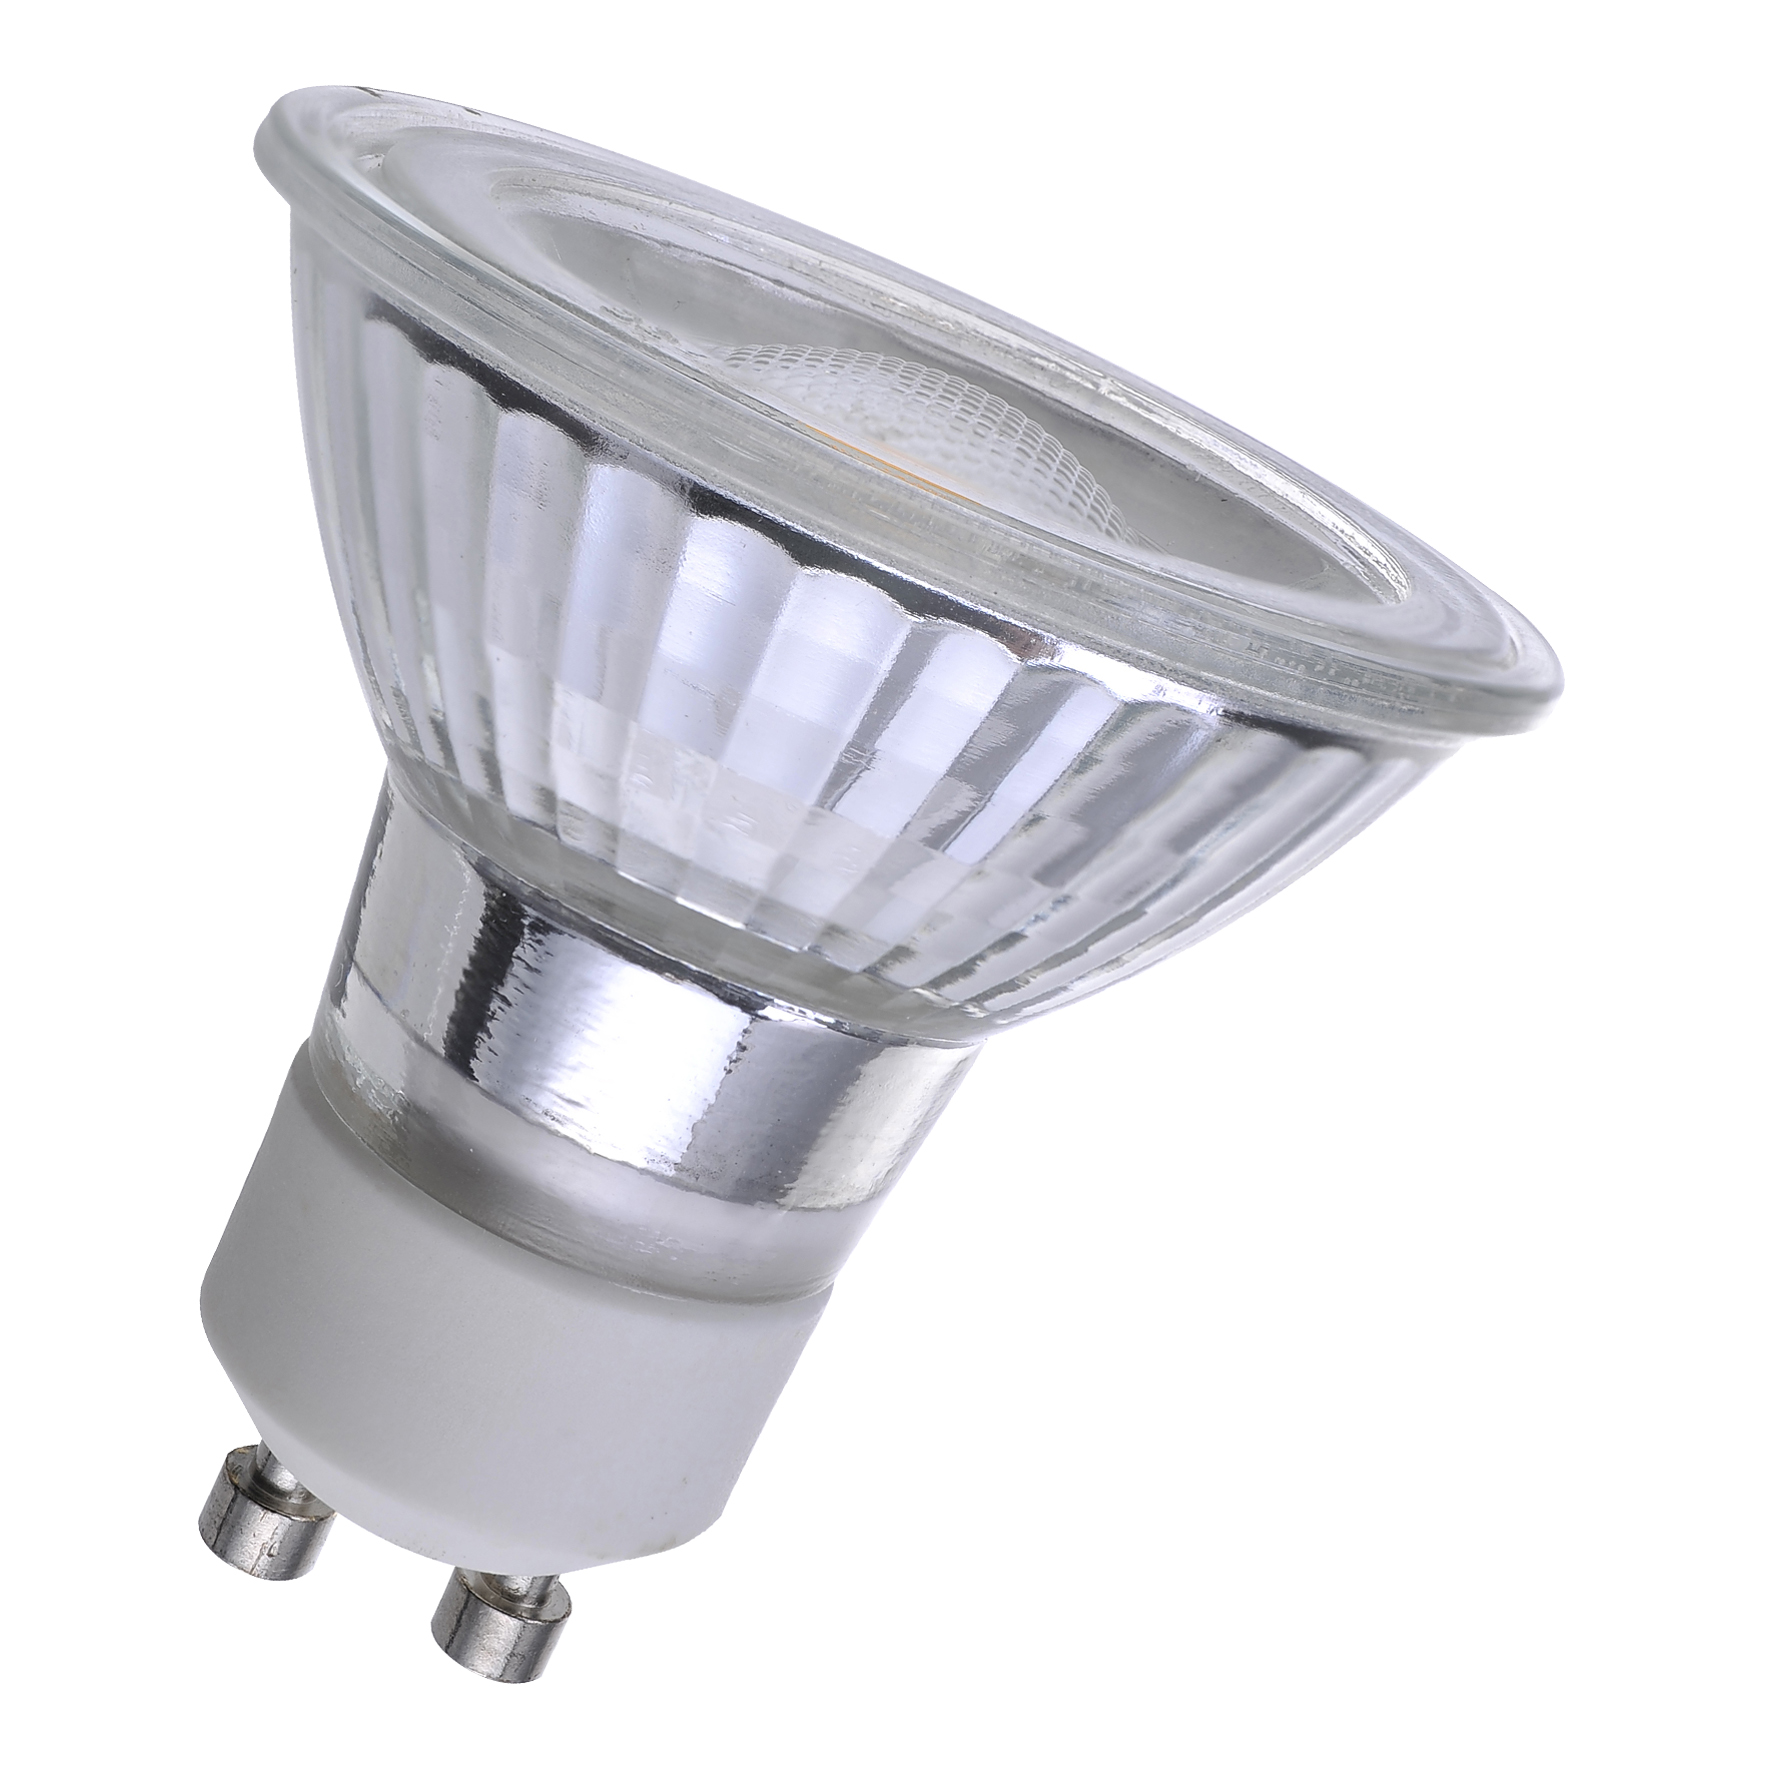 Led Gu10 5w 80100040596 Baispot Gu10 Led Reflector Led Lamps Lamps